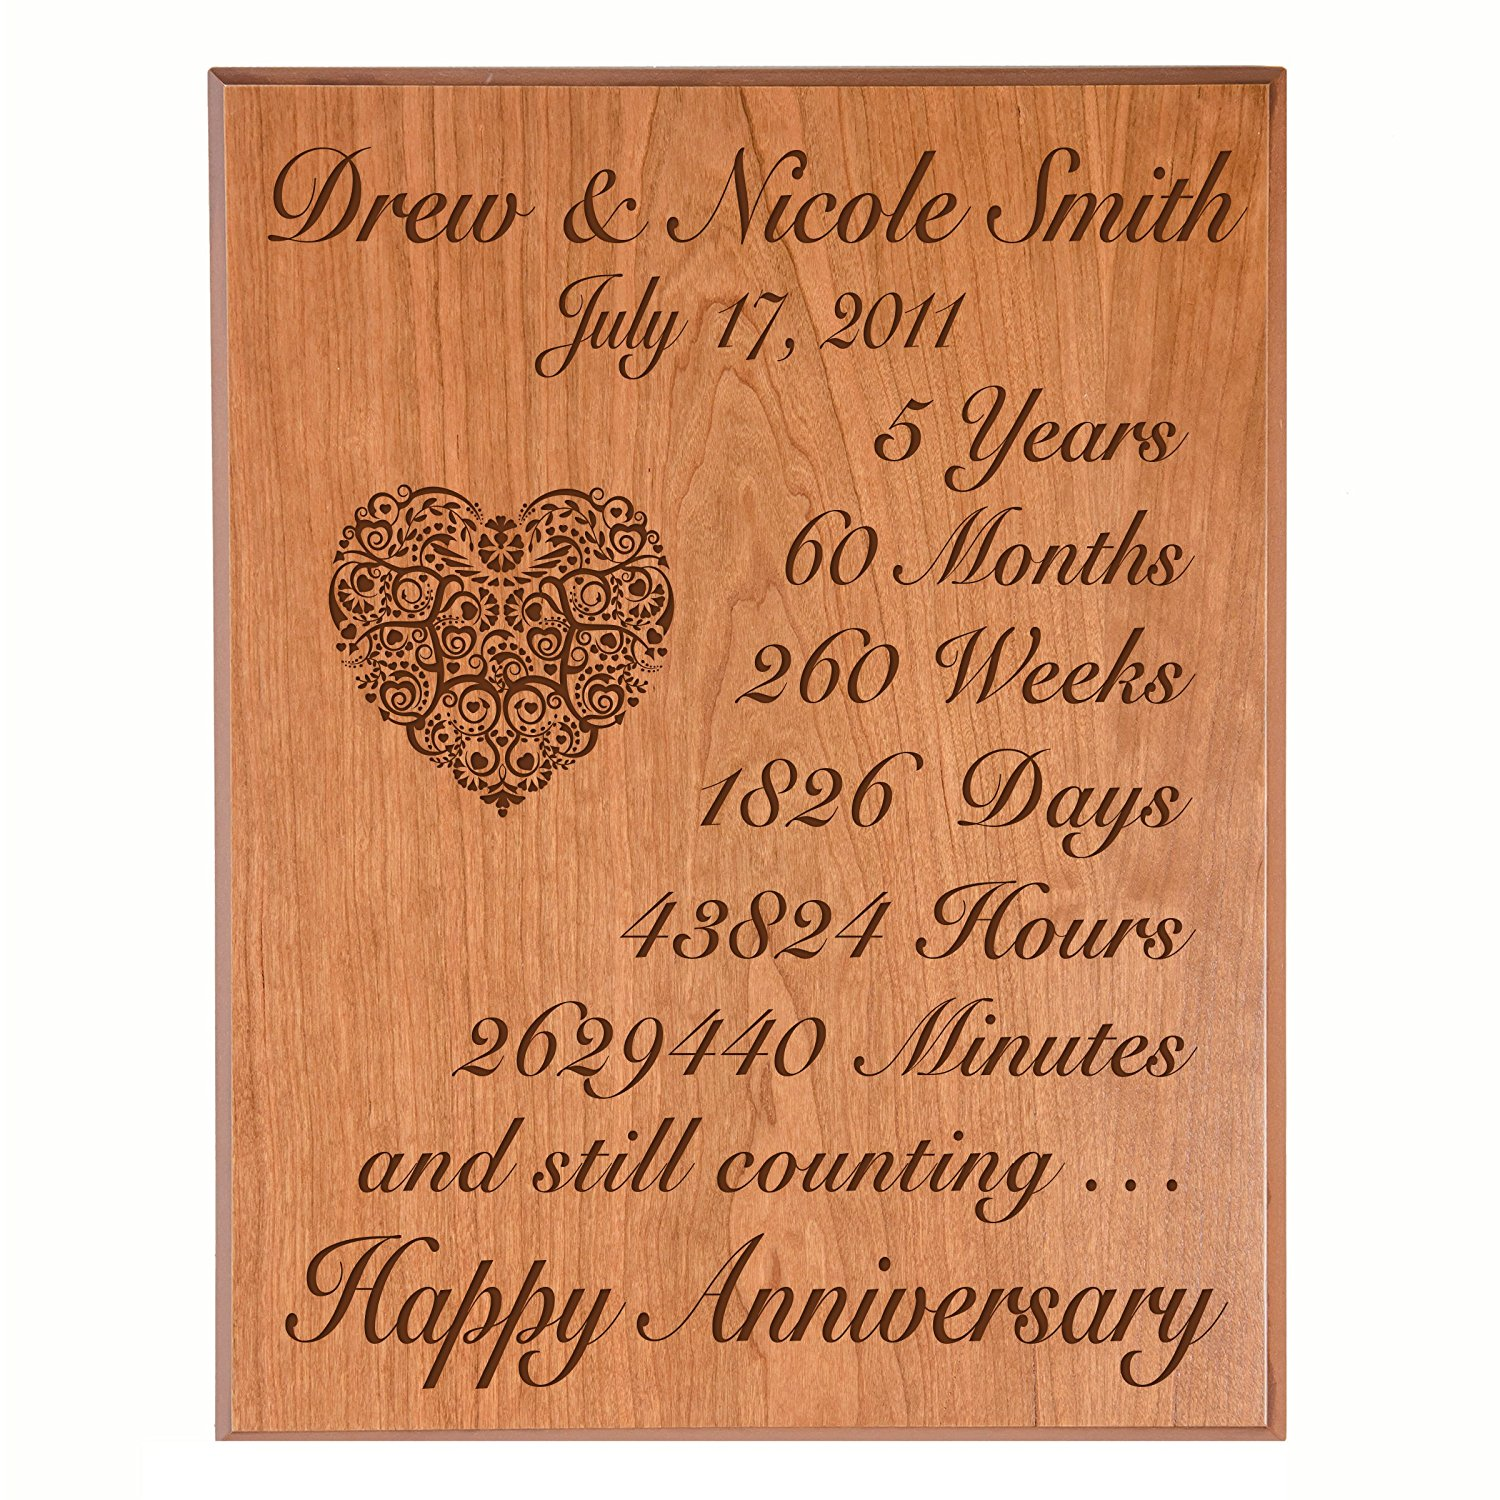 Personalized 5th Wedding Anniversary Wall Plaque Gifts For Custom 5 Year Gift Ideas